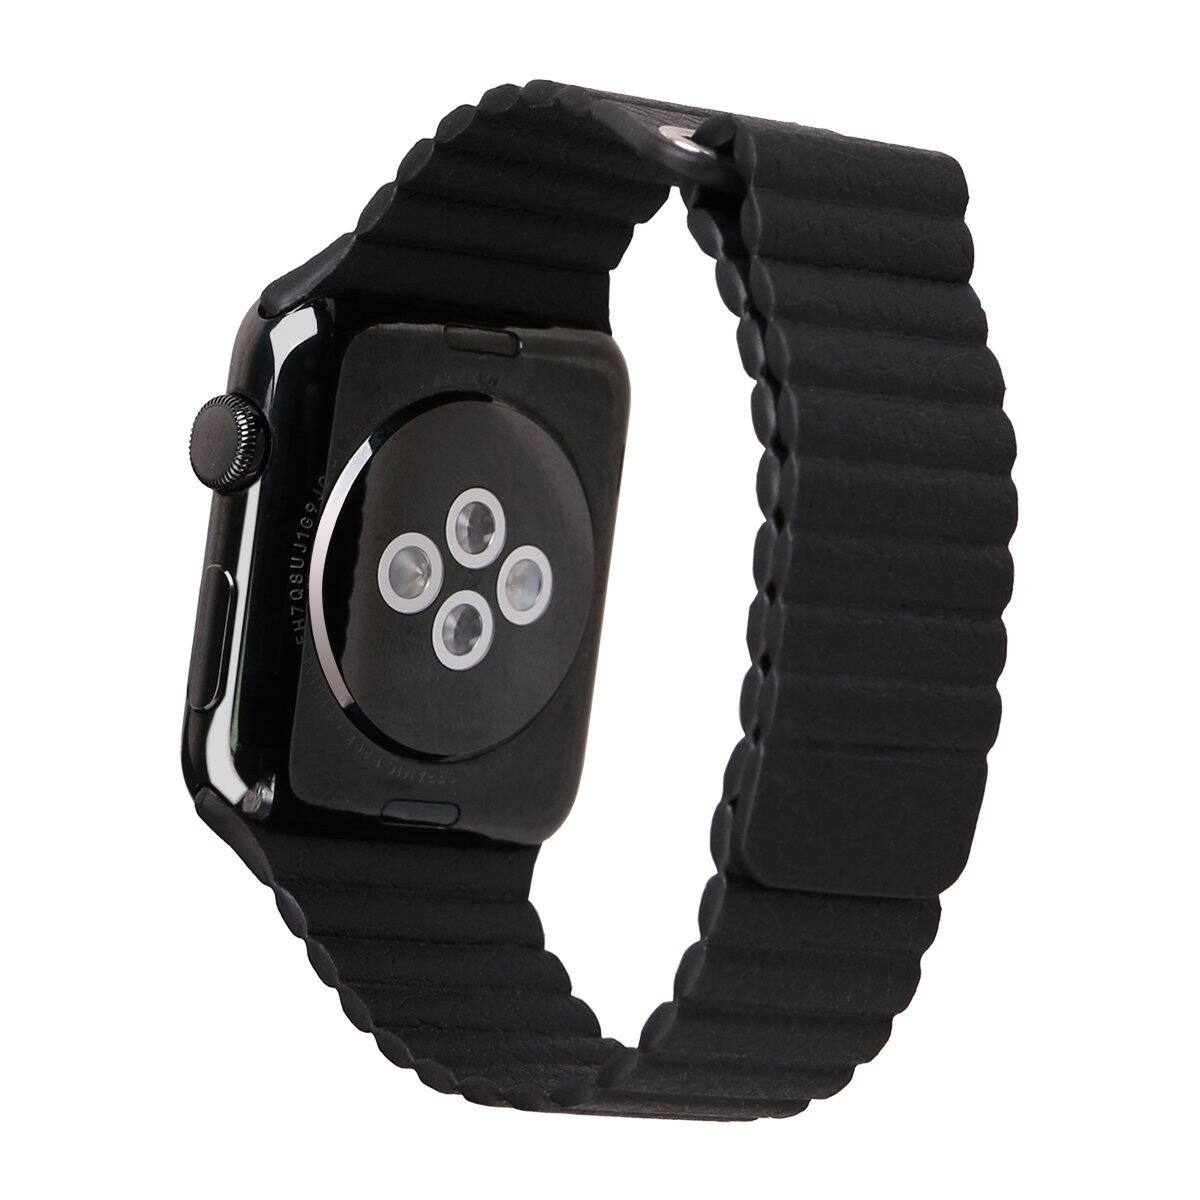 Apple Watch Band Soft Leather Loop with Strong Adjustable Magnetic Closure for 42mm (Black) for $5.99